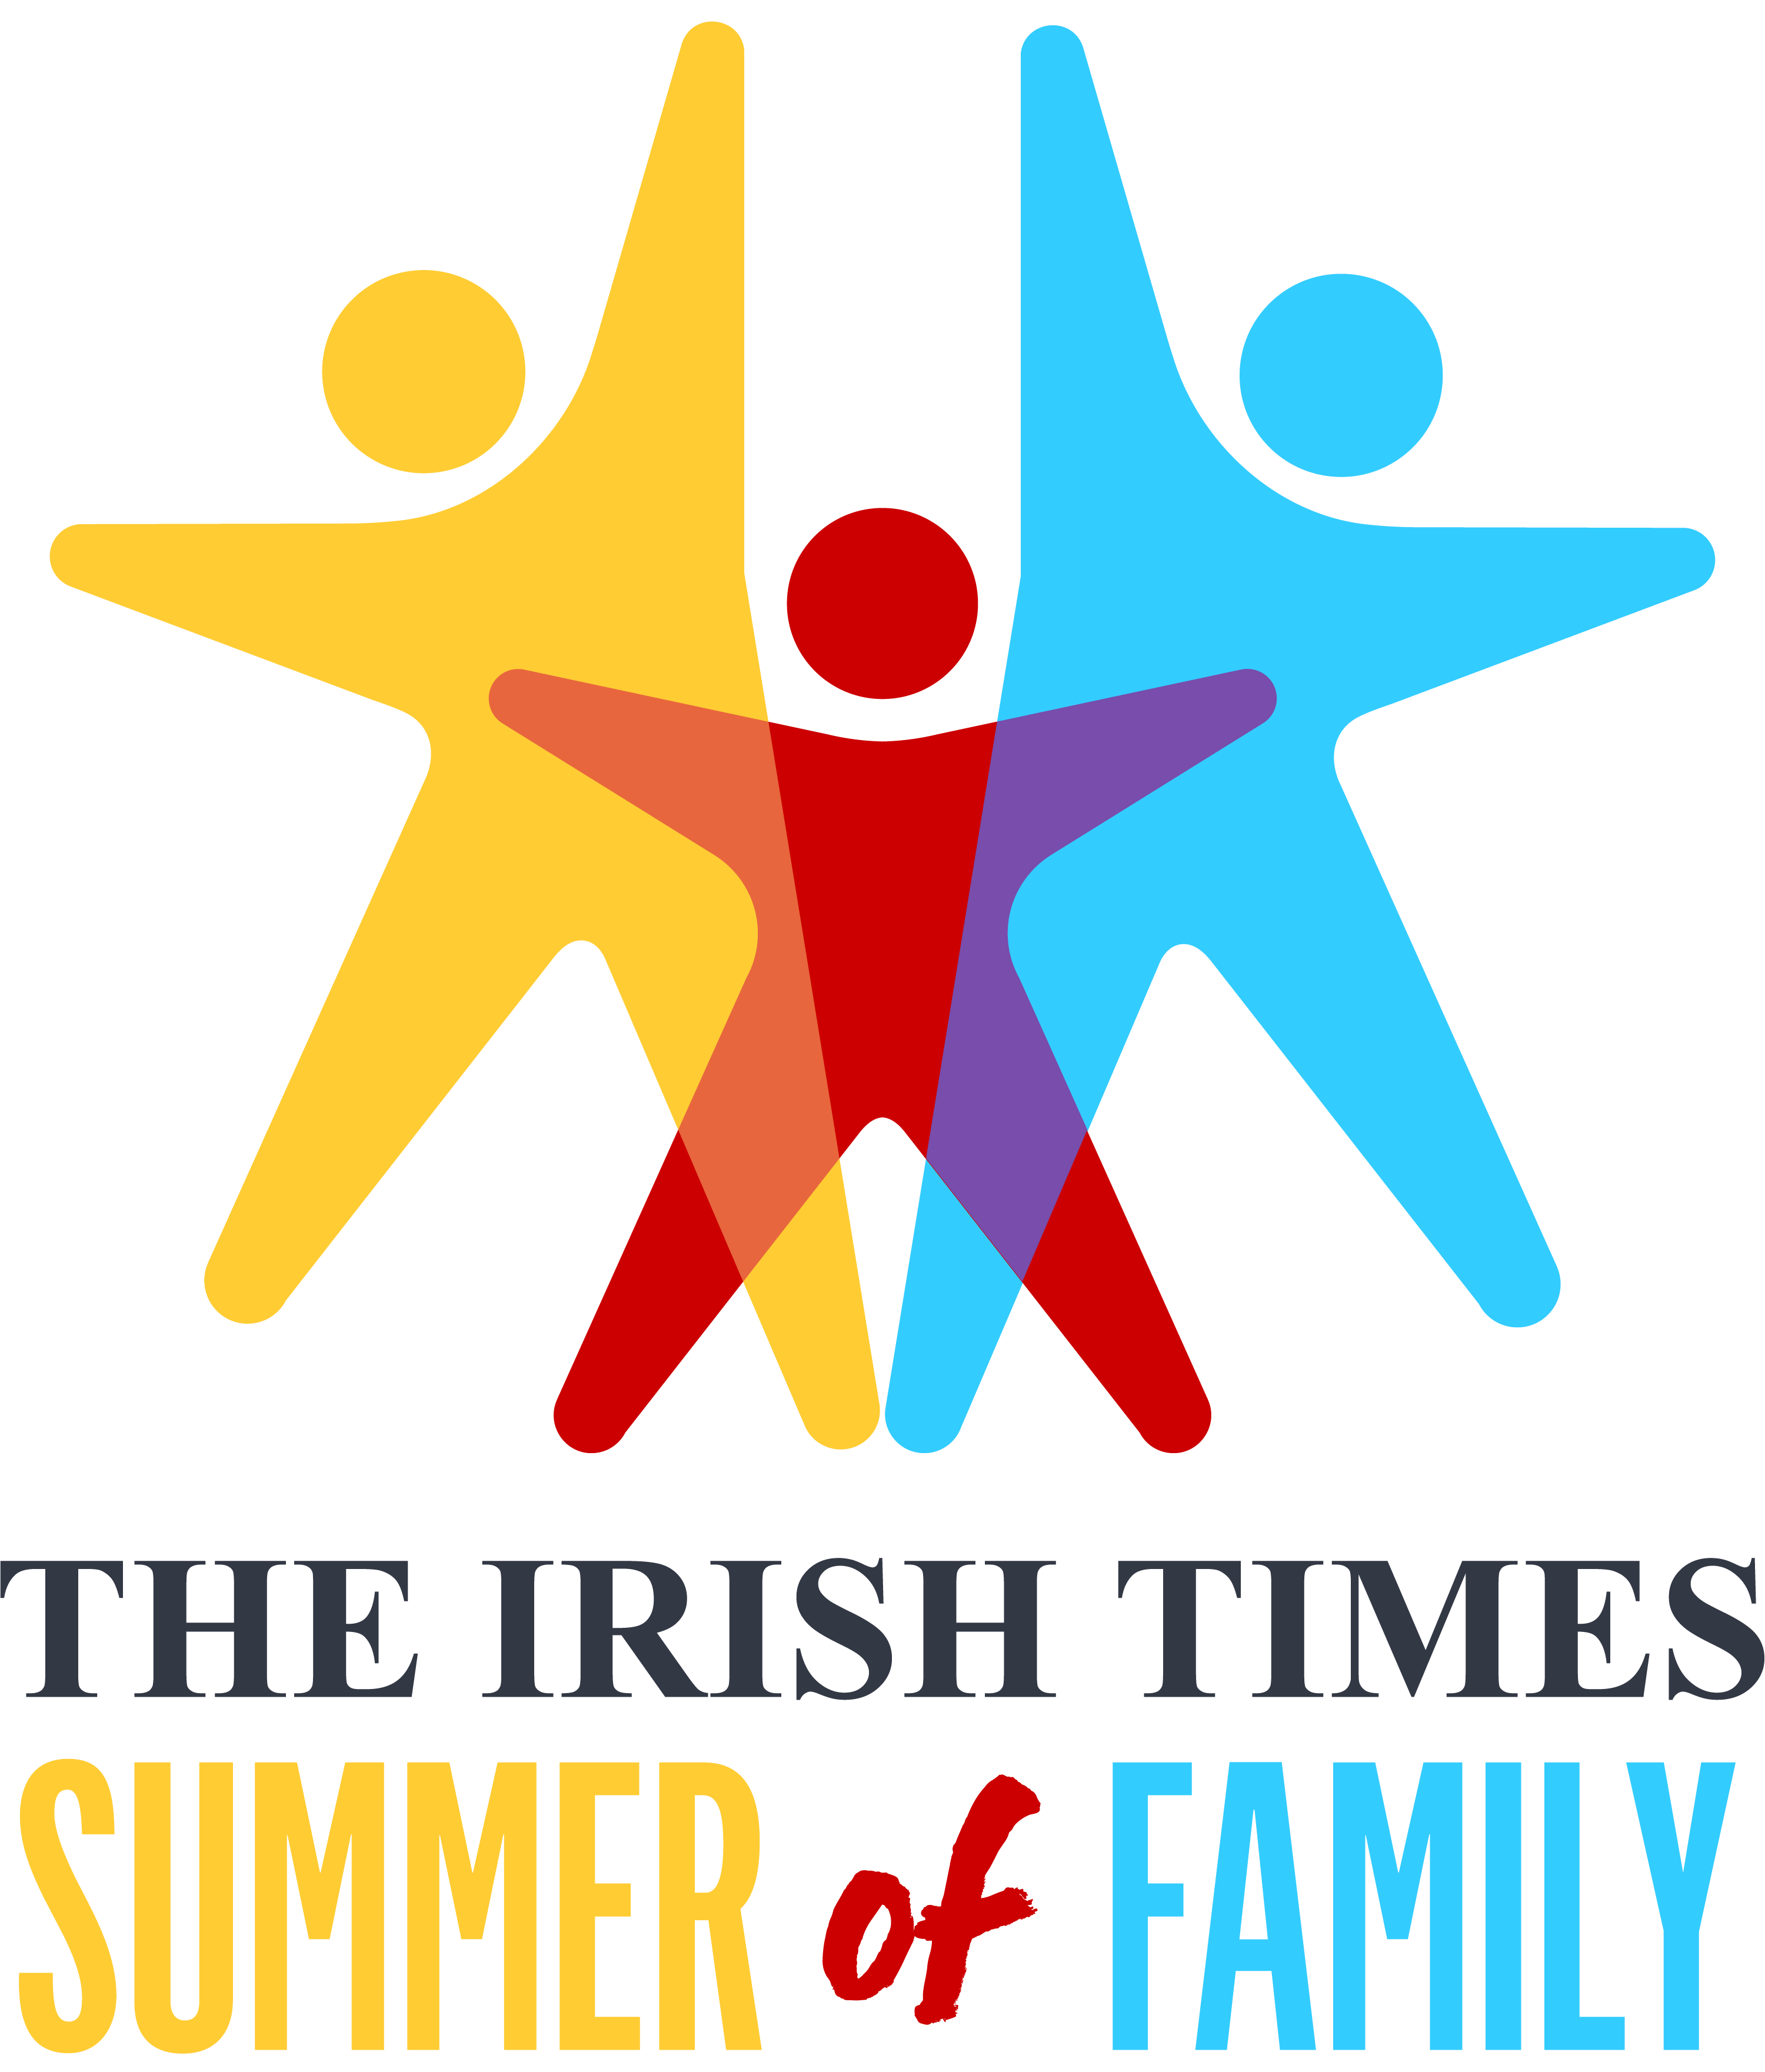 The Irish Times Summer of Family